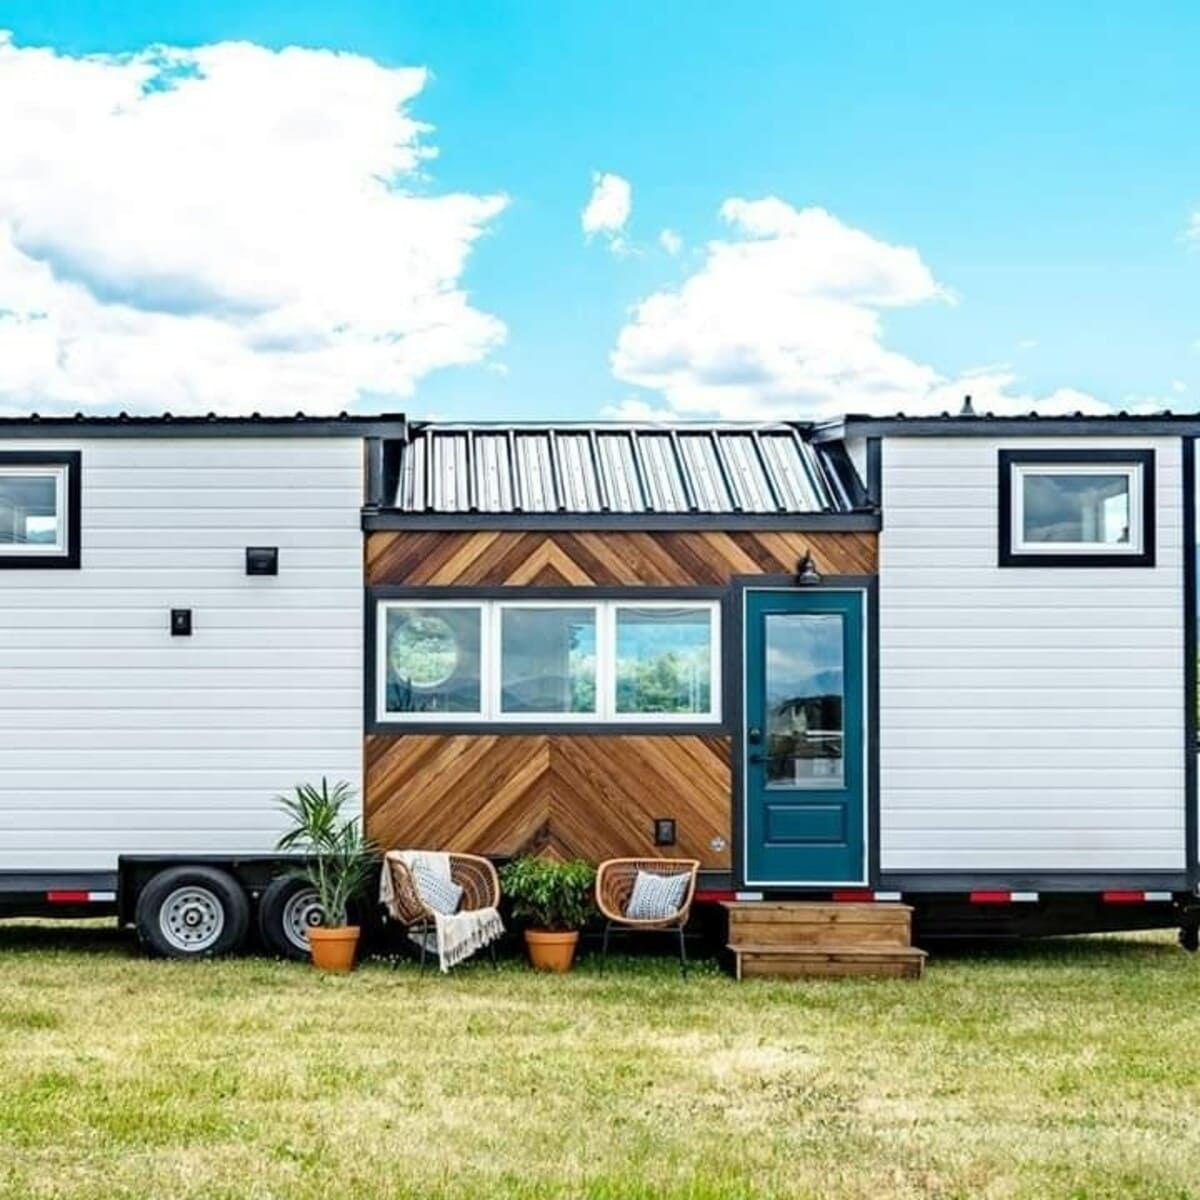 magnolia tiny house 3 1 - Tiny house serves as family holiday home and retirement investment